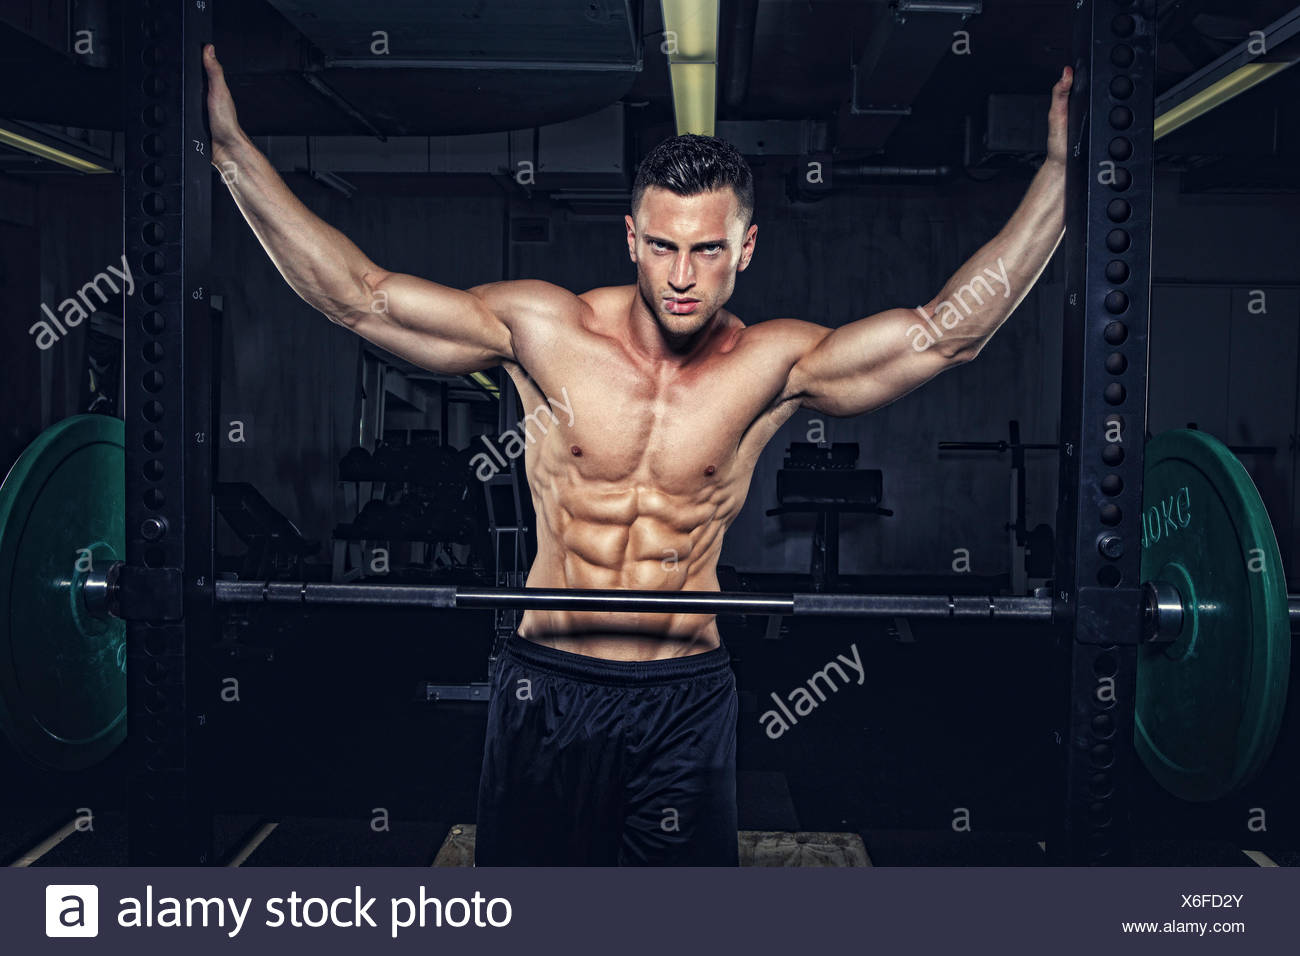 Physical athlete at Power Rack in gym - Stock Image